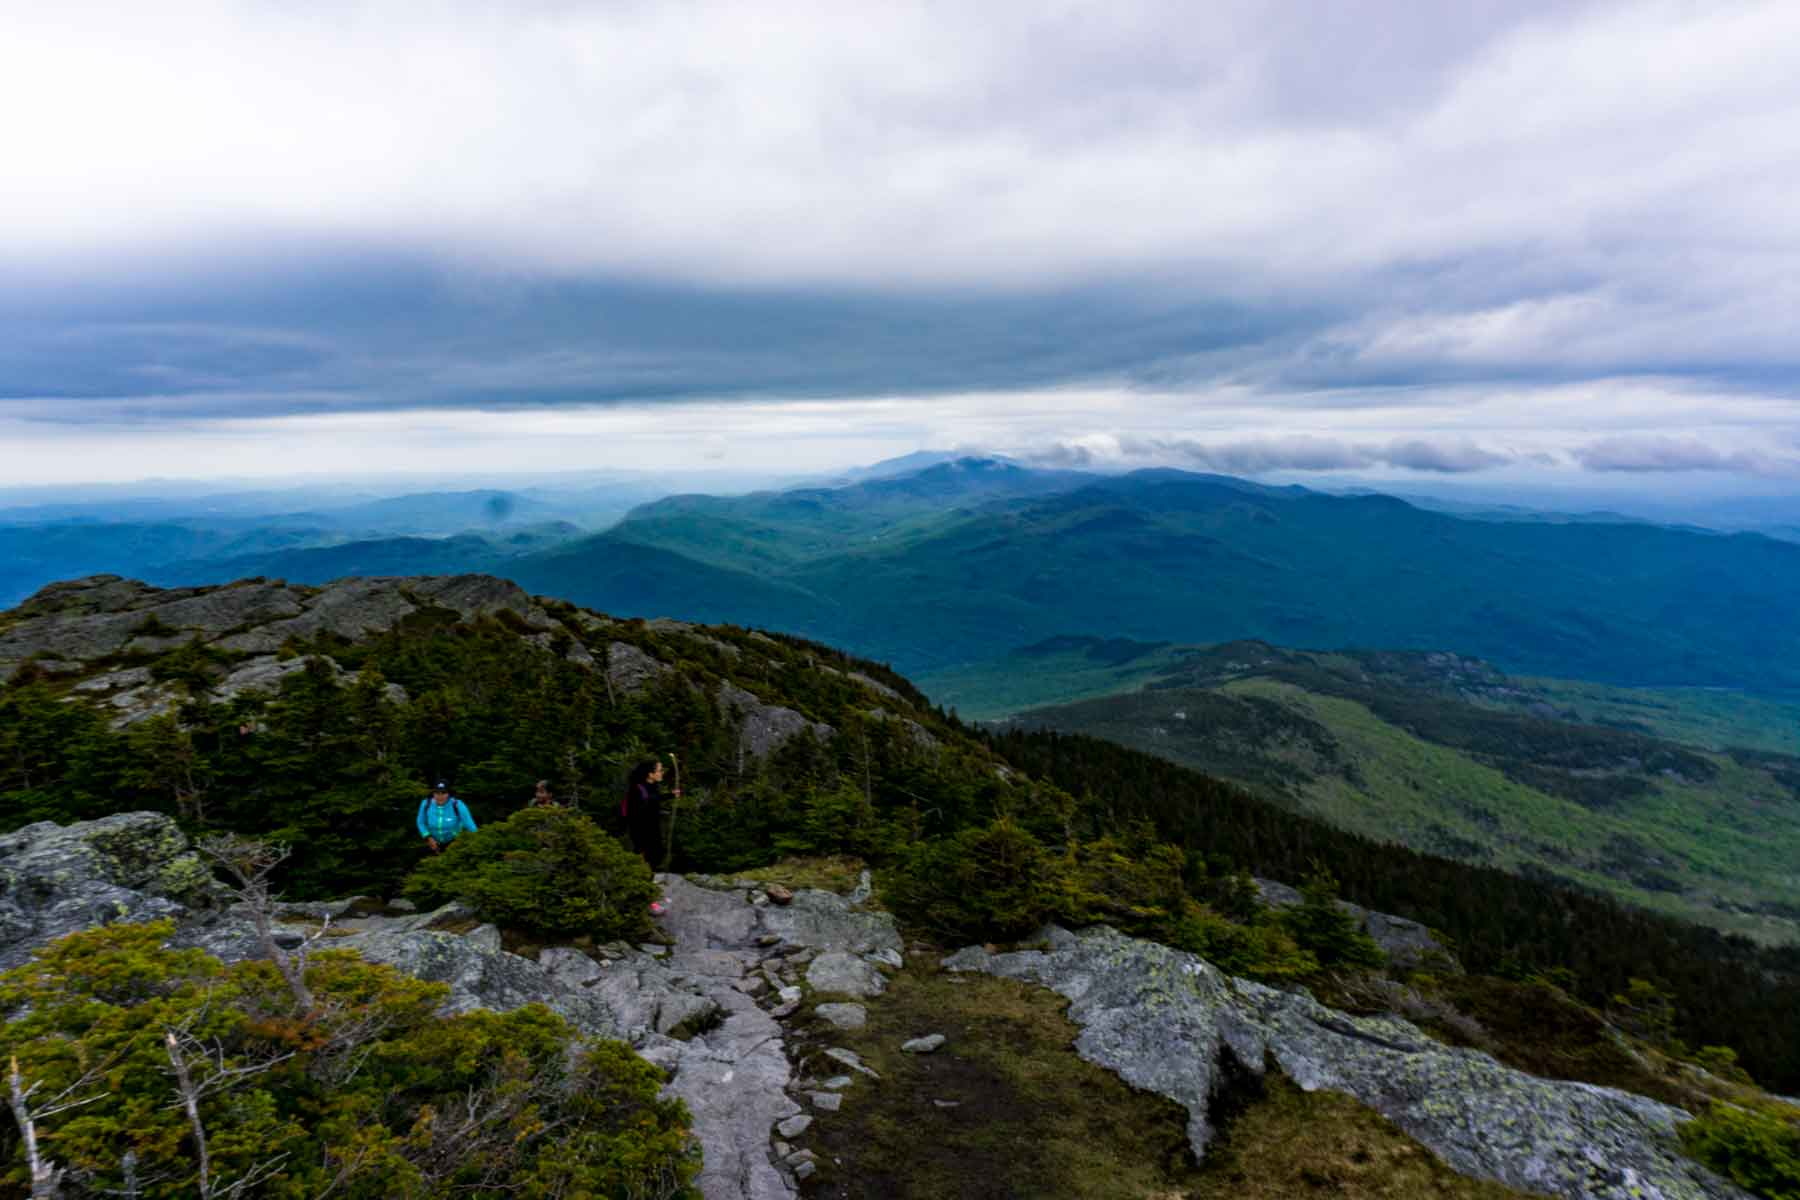 Views from Camel's Hump Summit